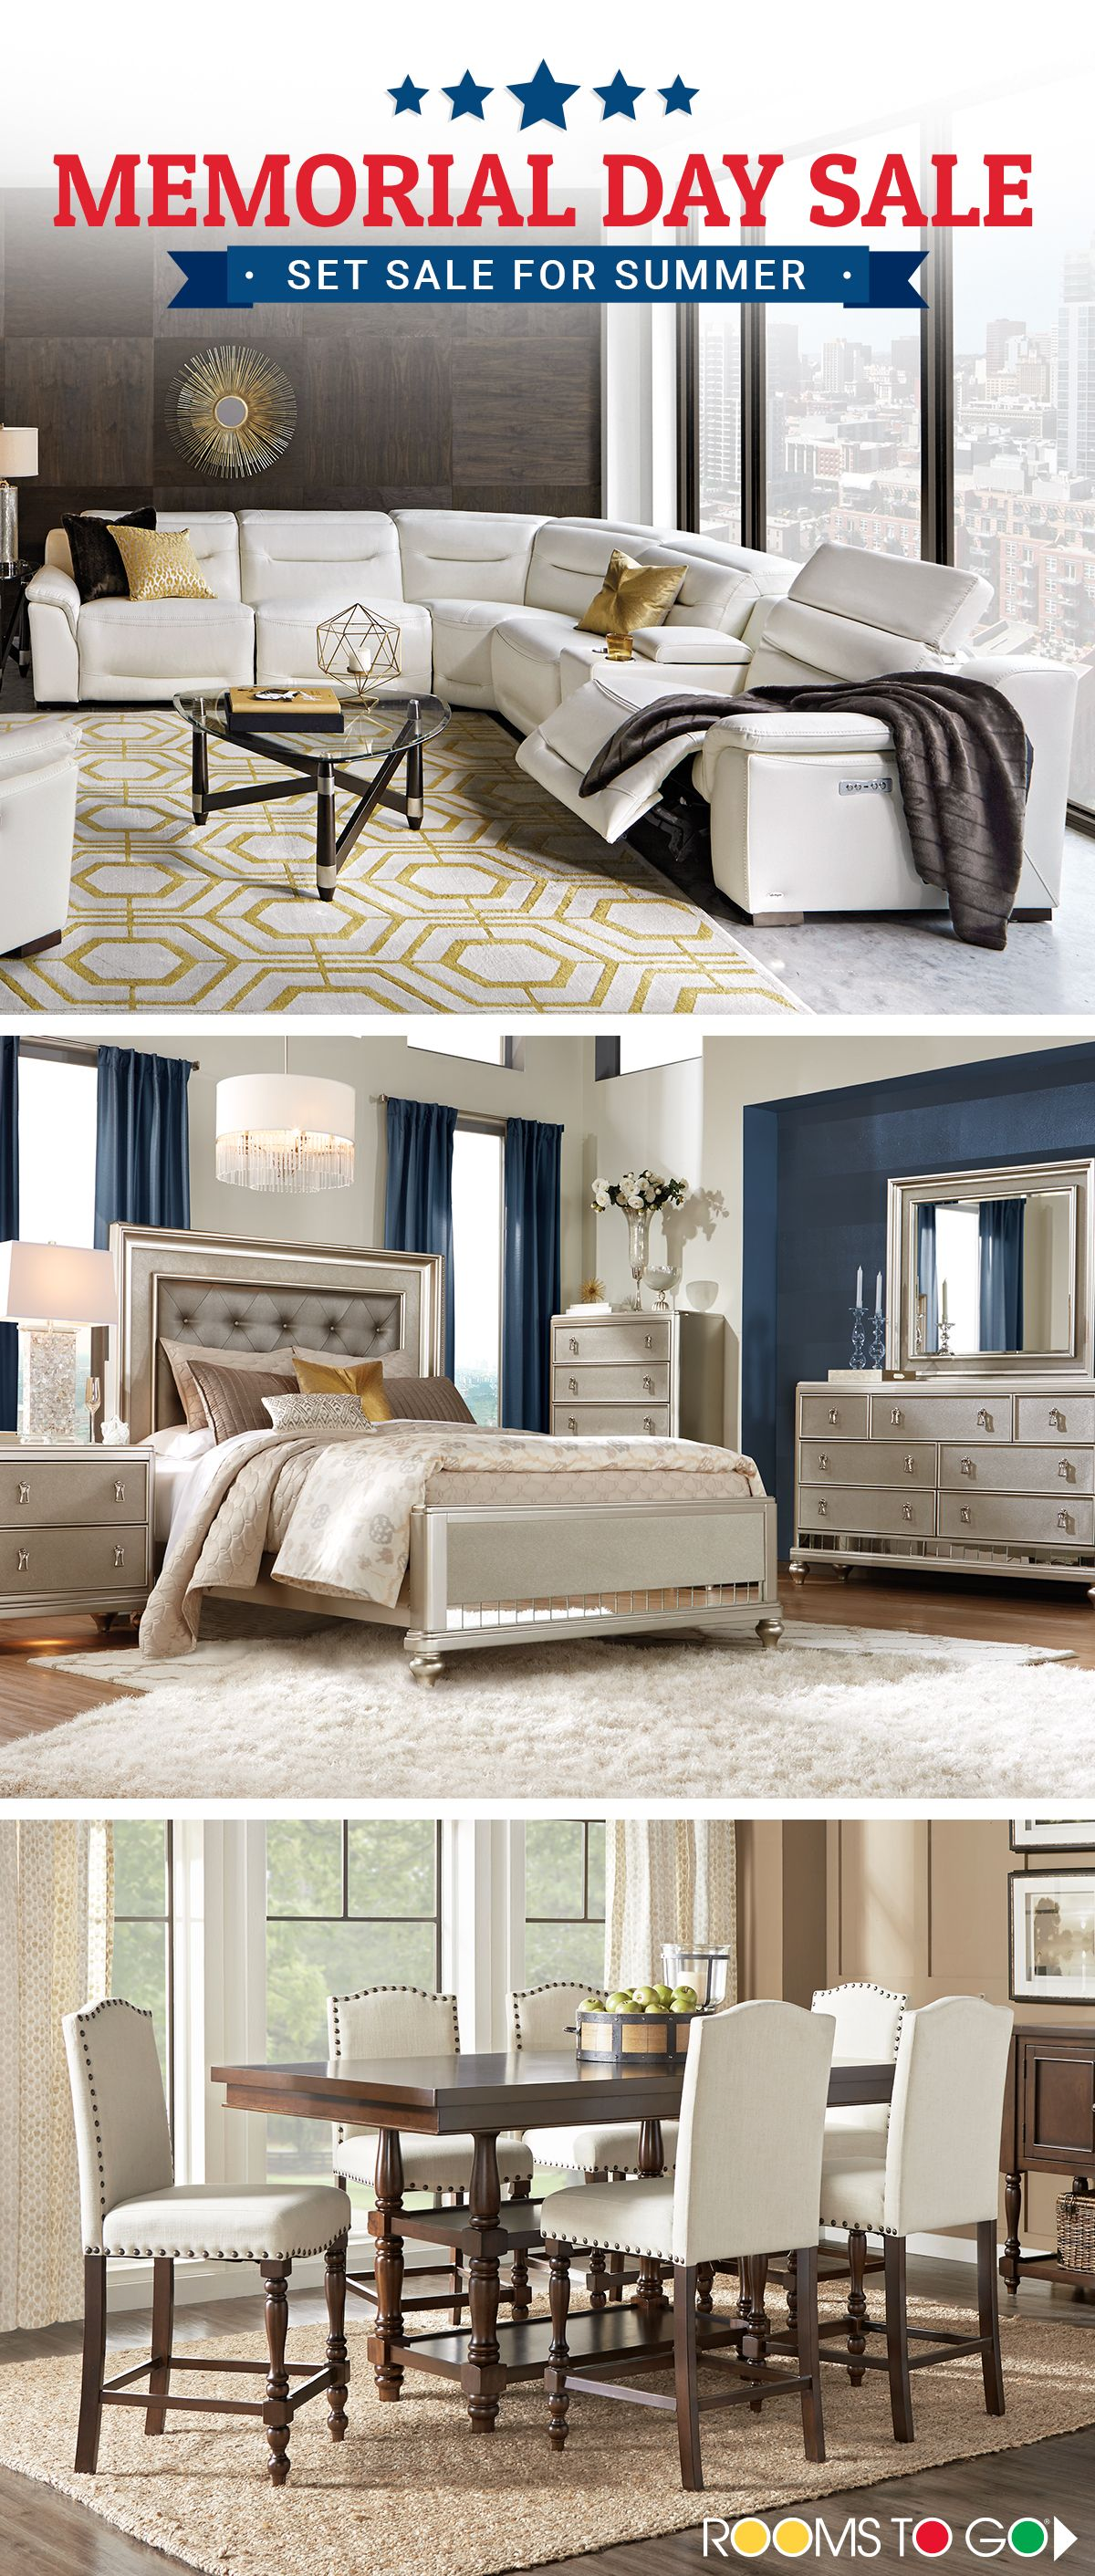 Set Sale For Summer With Great Savings On Bedrooms Living Rooms